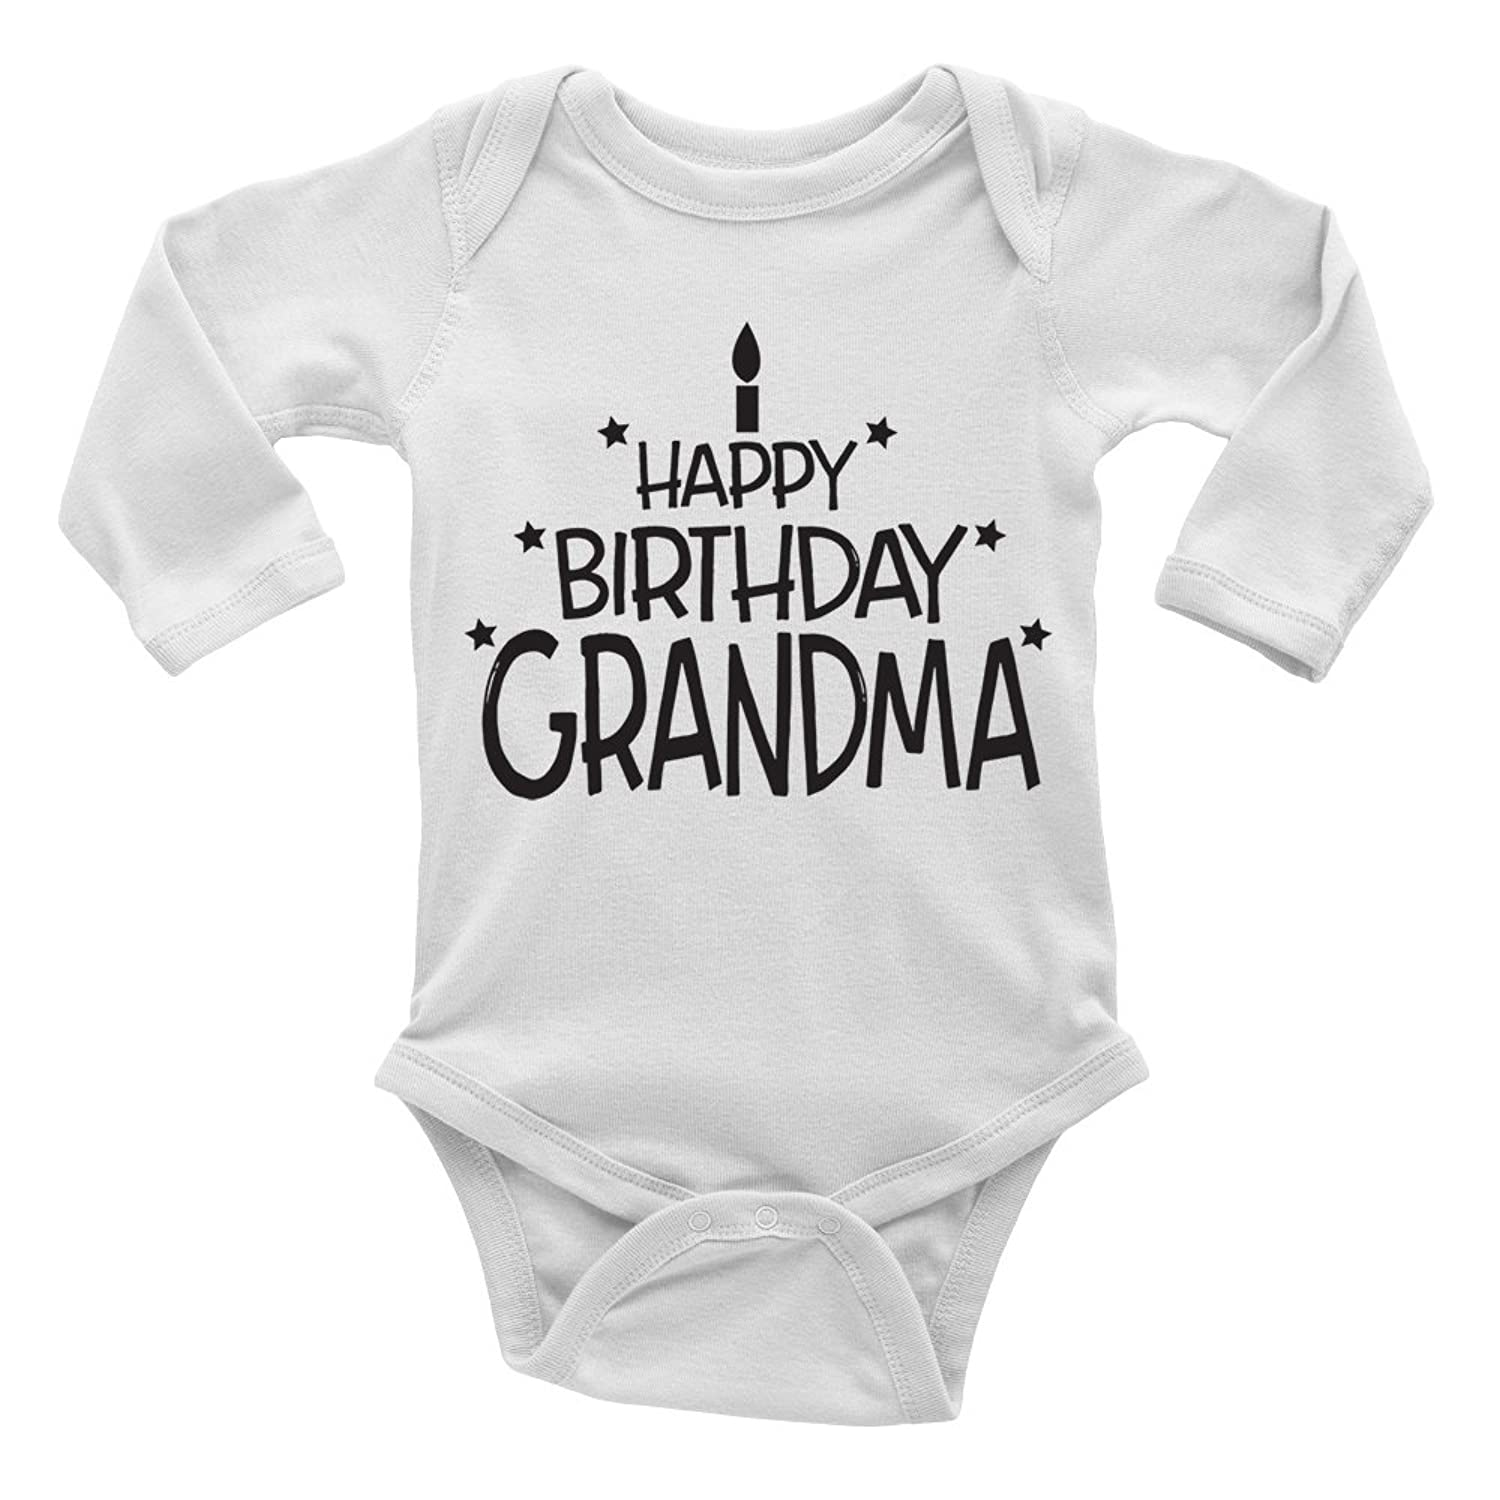 Happy Birthday Grandma Cute Boys and Girls Long Sleeve Baby Vest